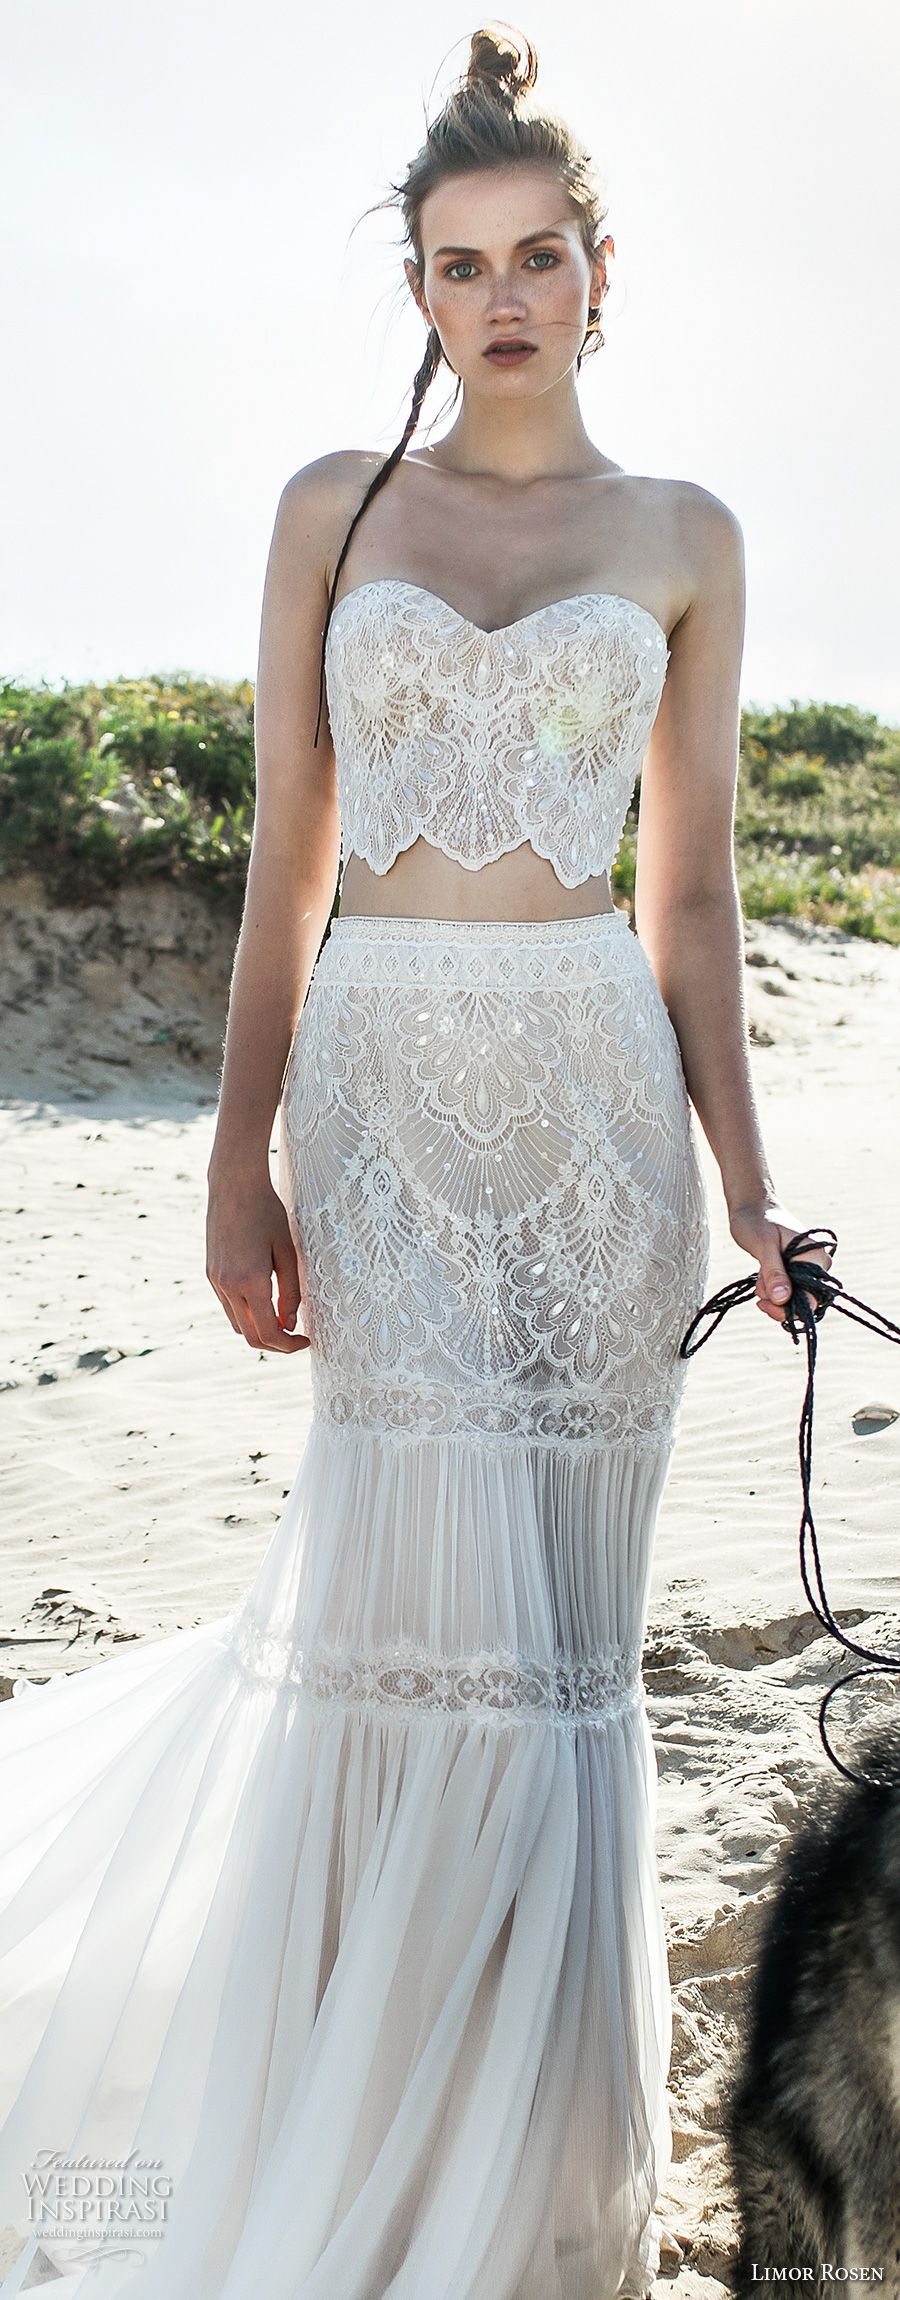 Pies and thighs wedding dress